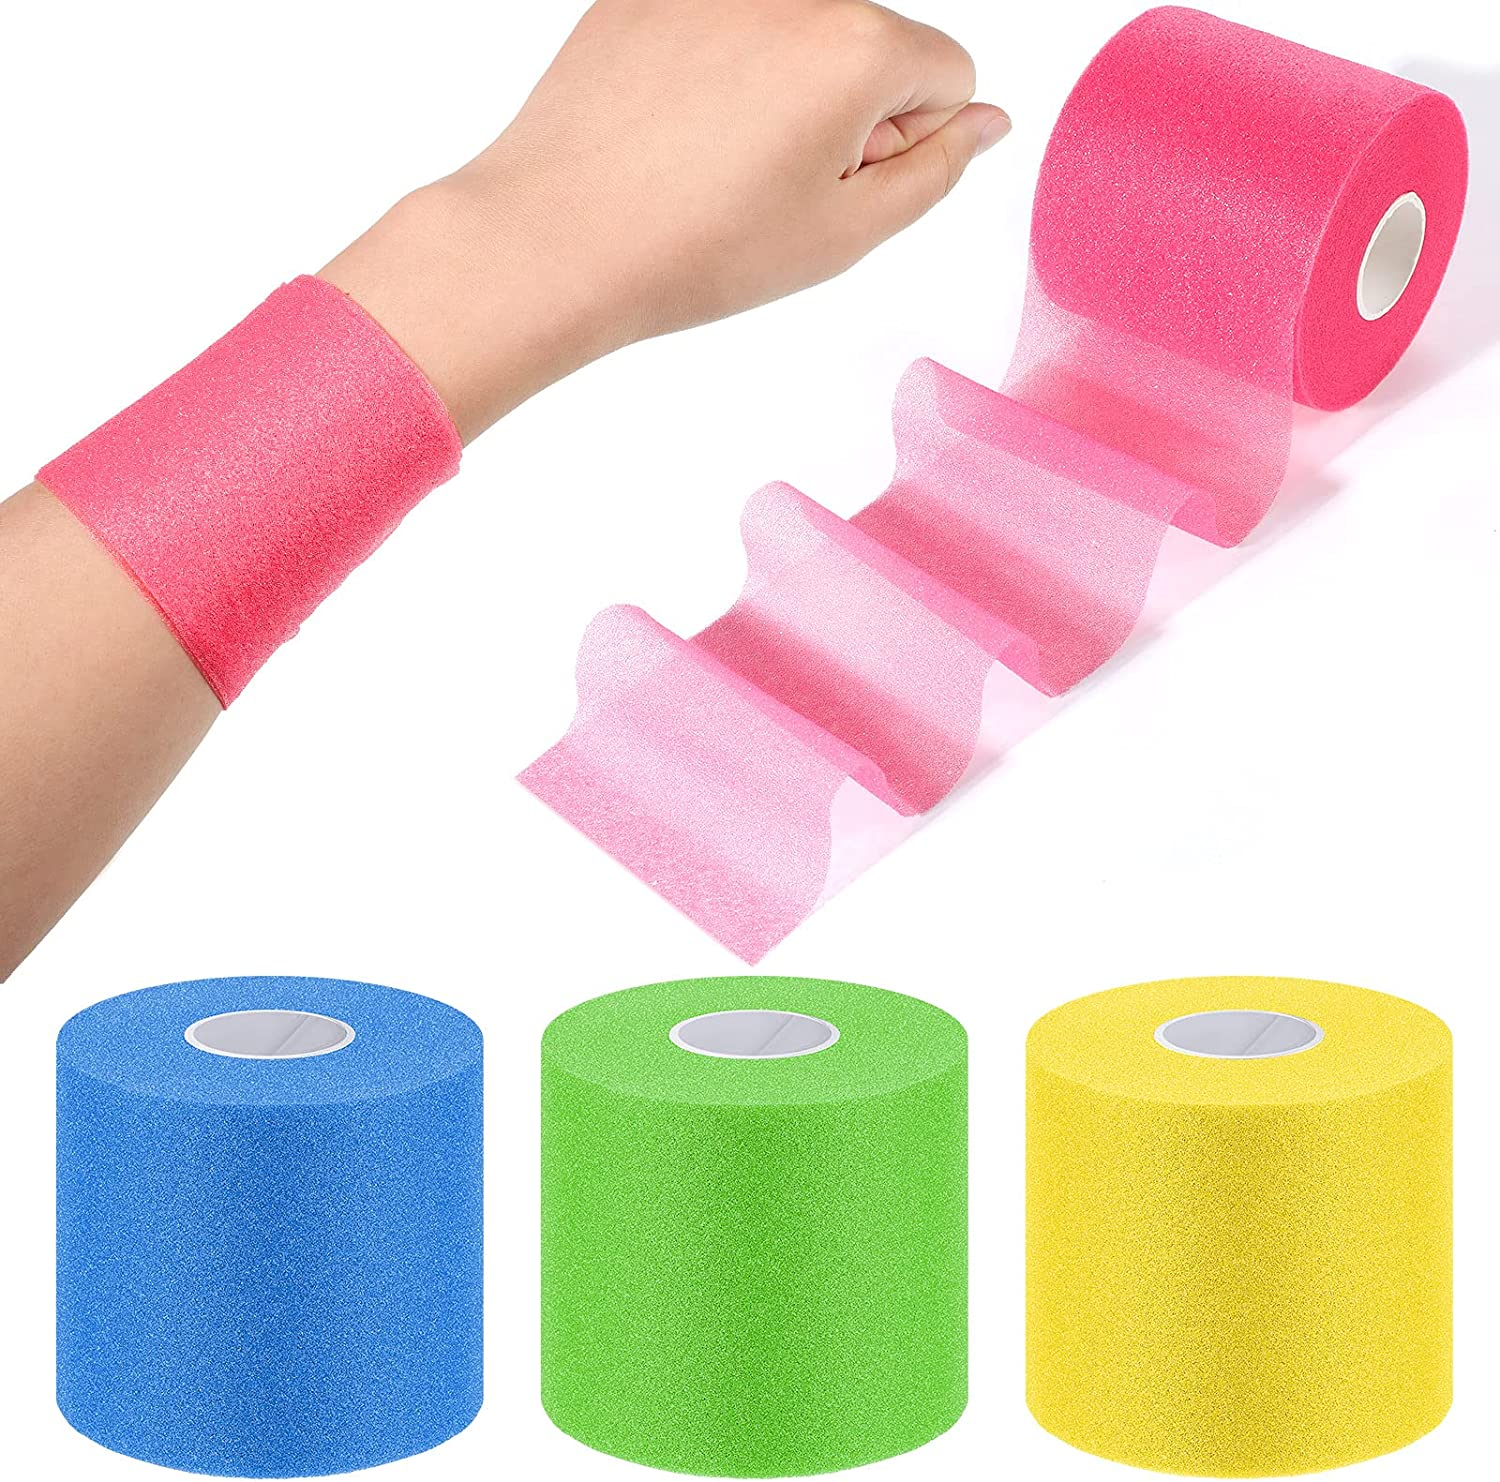 Max 73% OFF 4 Pieces Raleigh Mall Foam Underwrap Athletic Tap Pre-wrap Athlet Sports